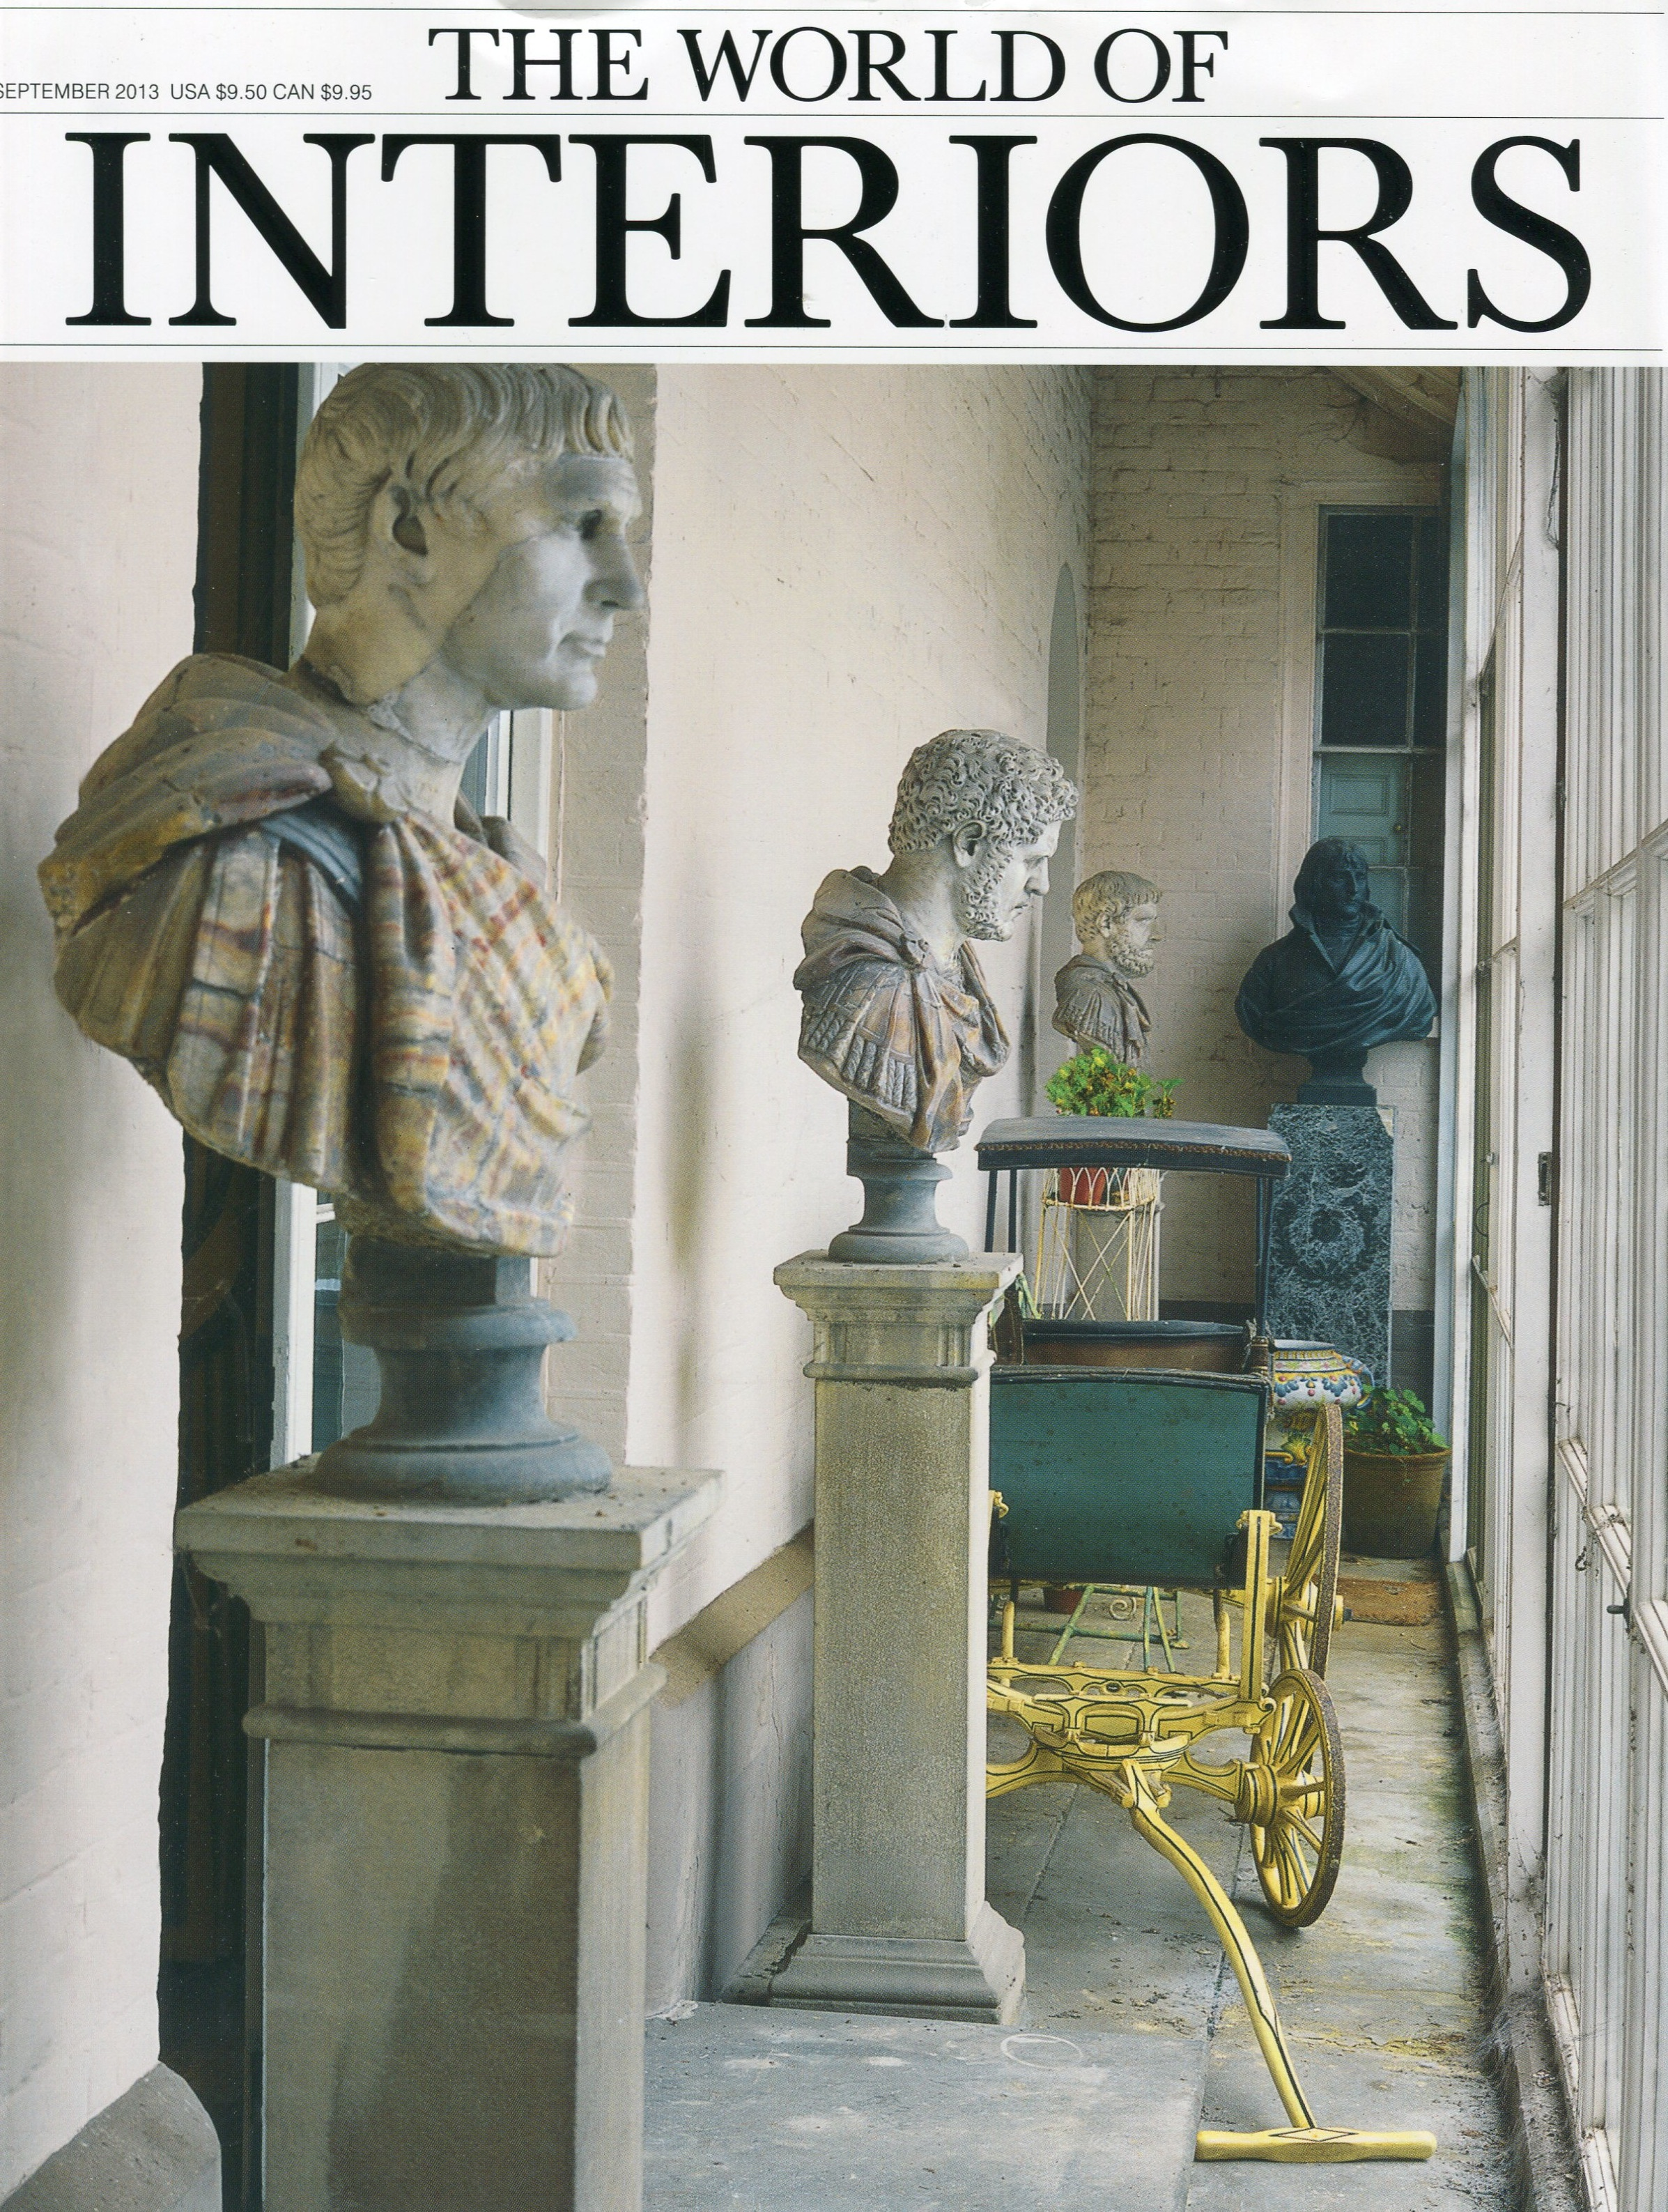 The World of Interiors September 2013_1